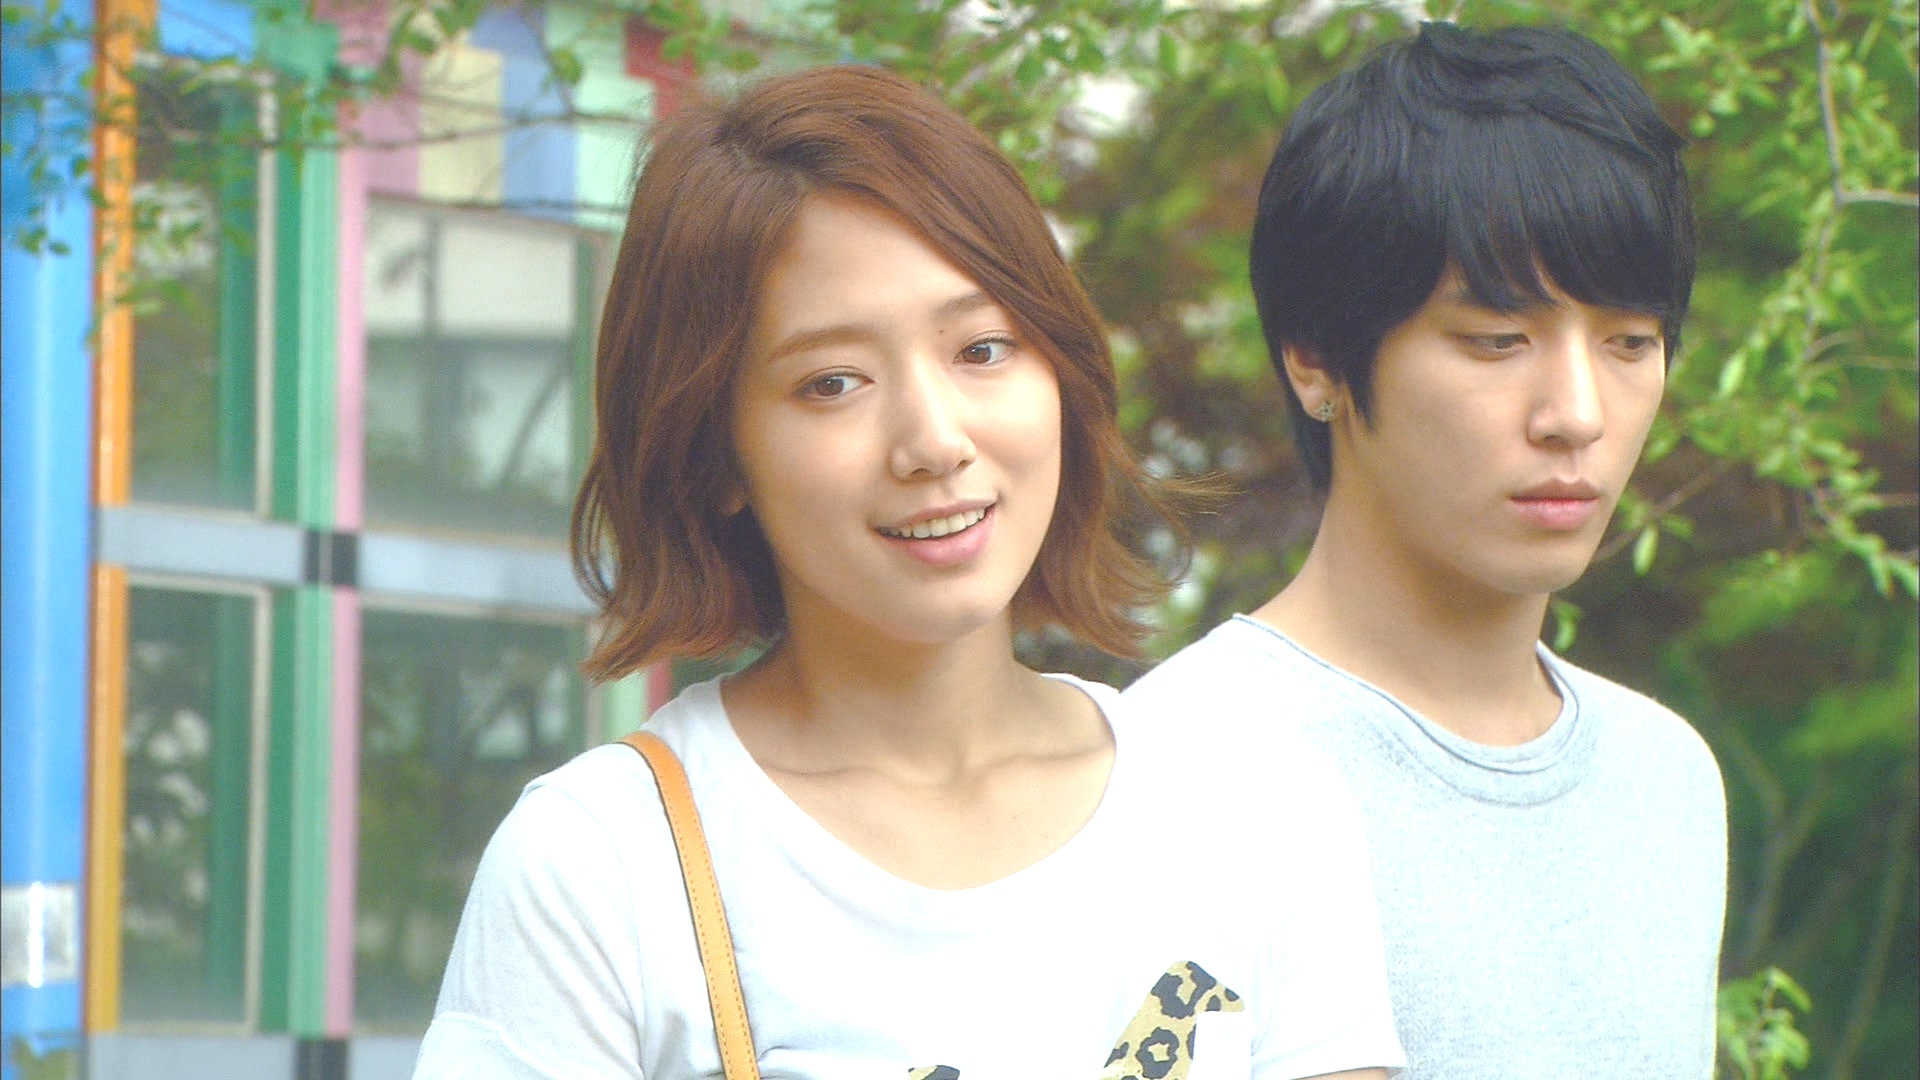 heartstrings full movie subtitle indonesia download